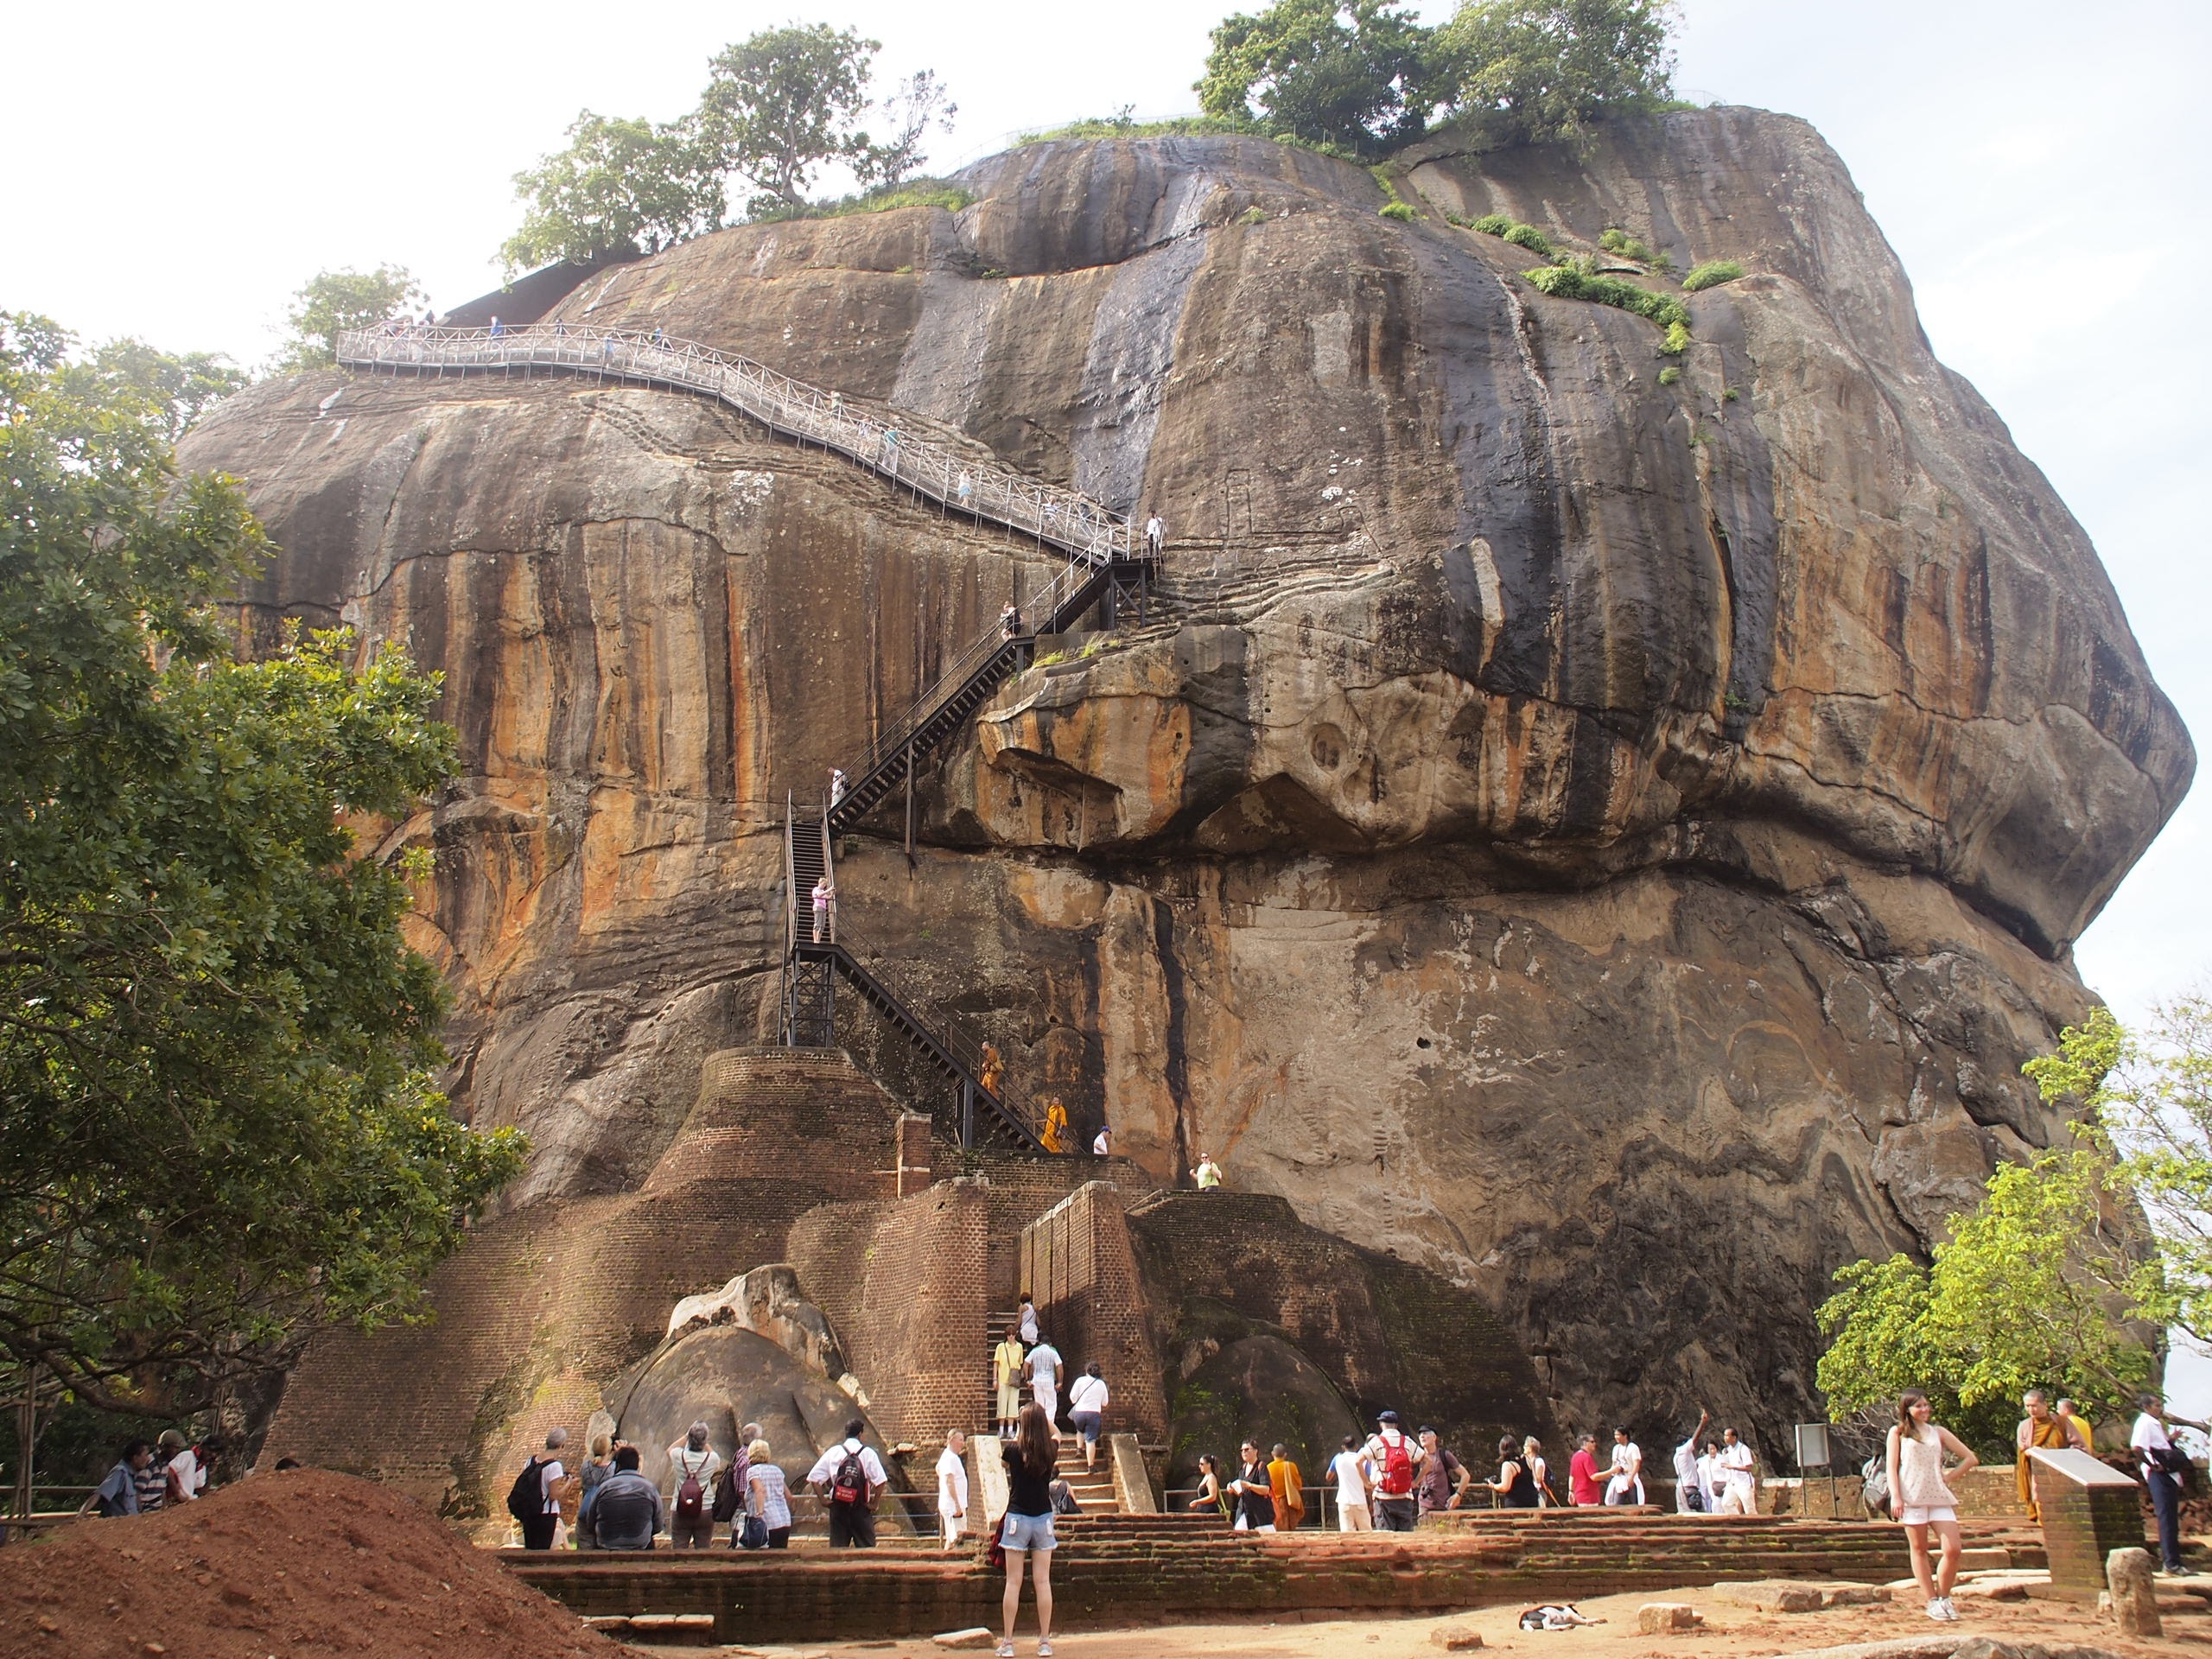 Climbing Sigiriya rock - a hot and sweaty affair